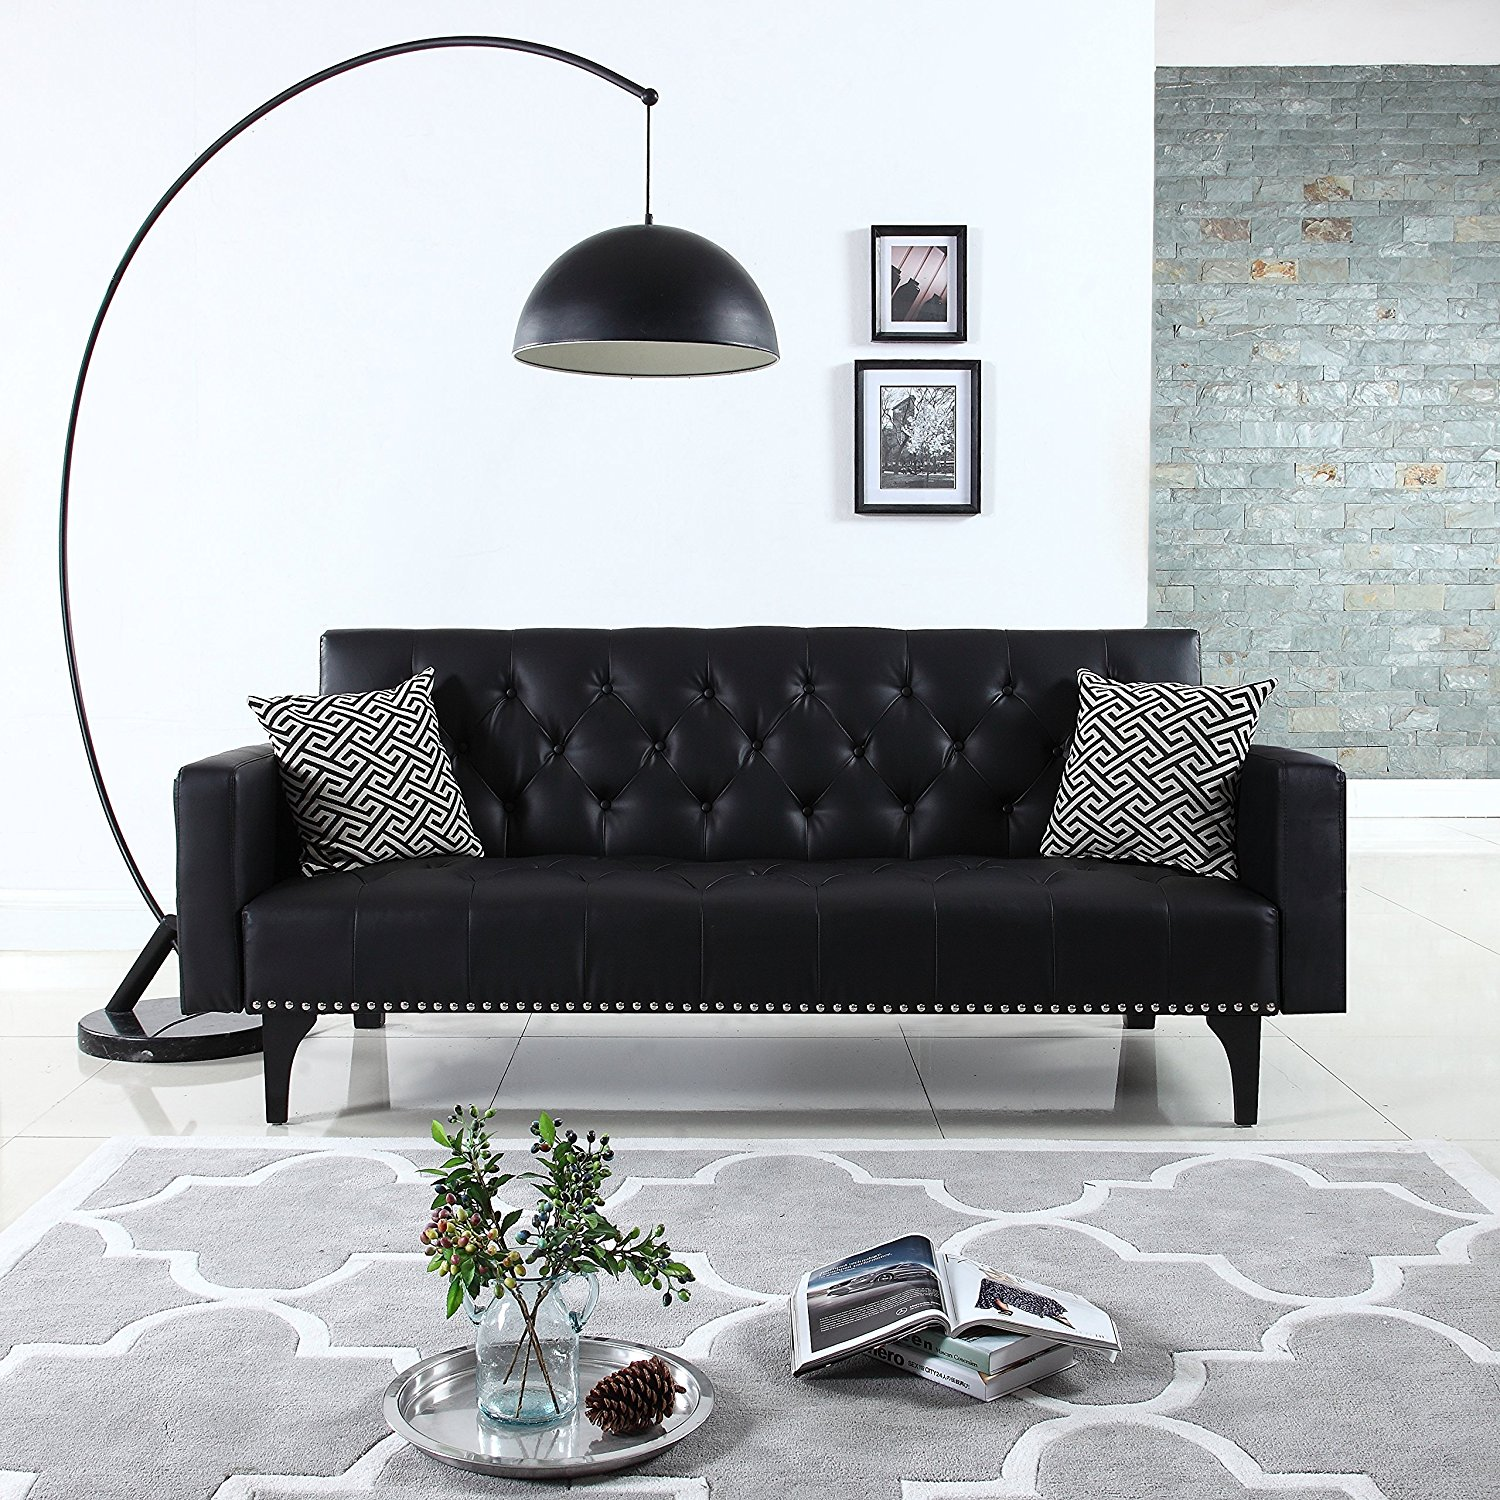 A Black Leather Couch – A Unique Furniture Piece